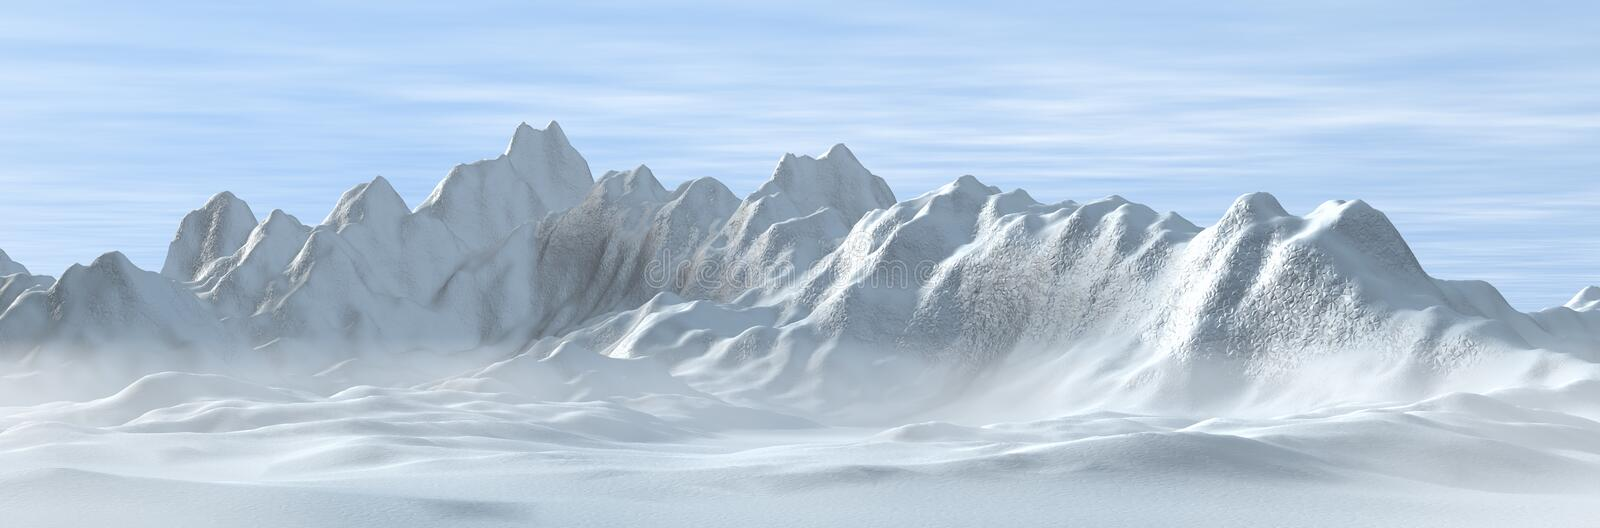 Download Snowy And Foggy Mountains Royalty Free Stock Photo - Image: 8893935